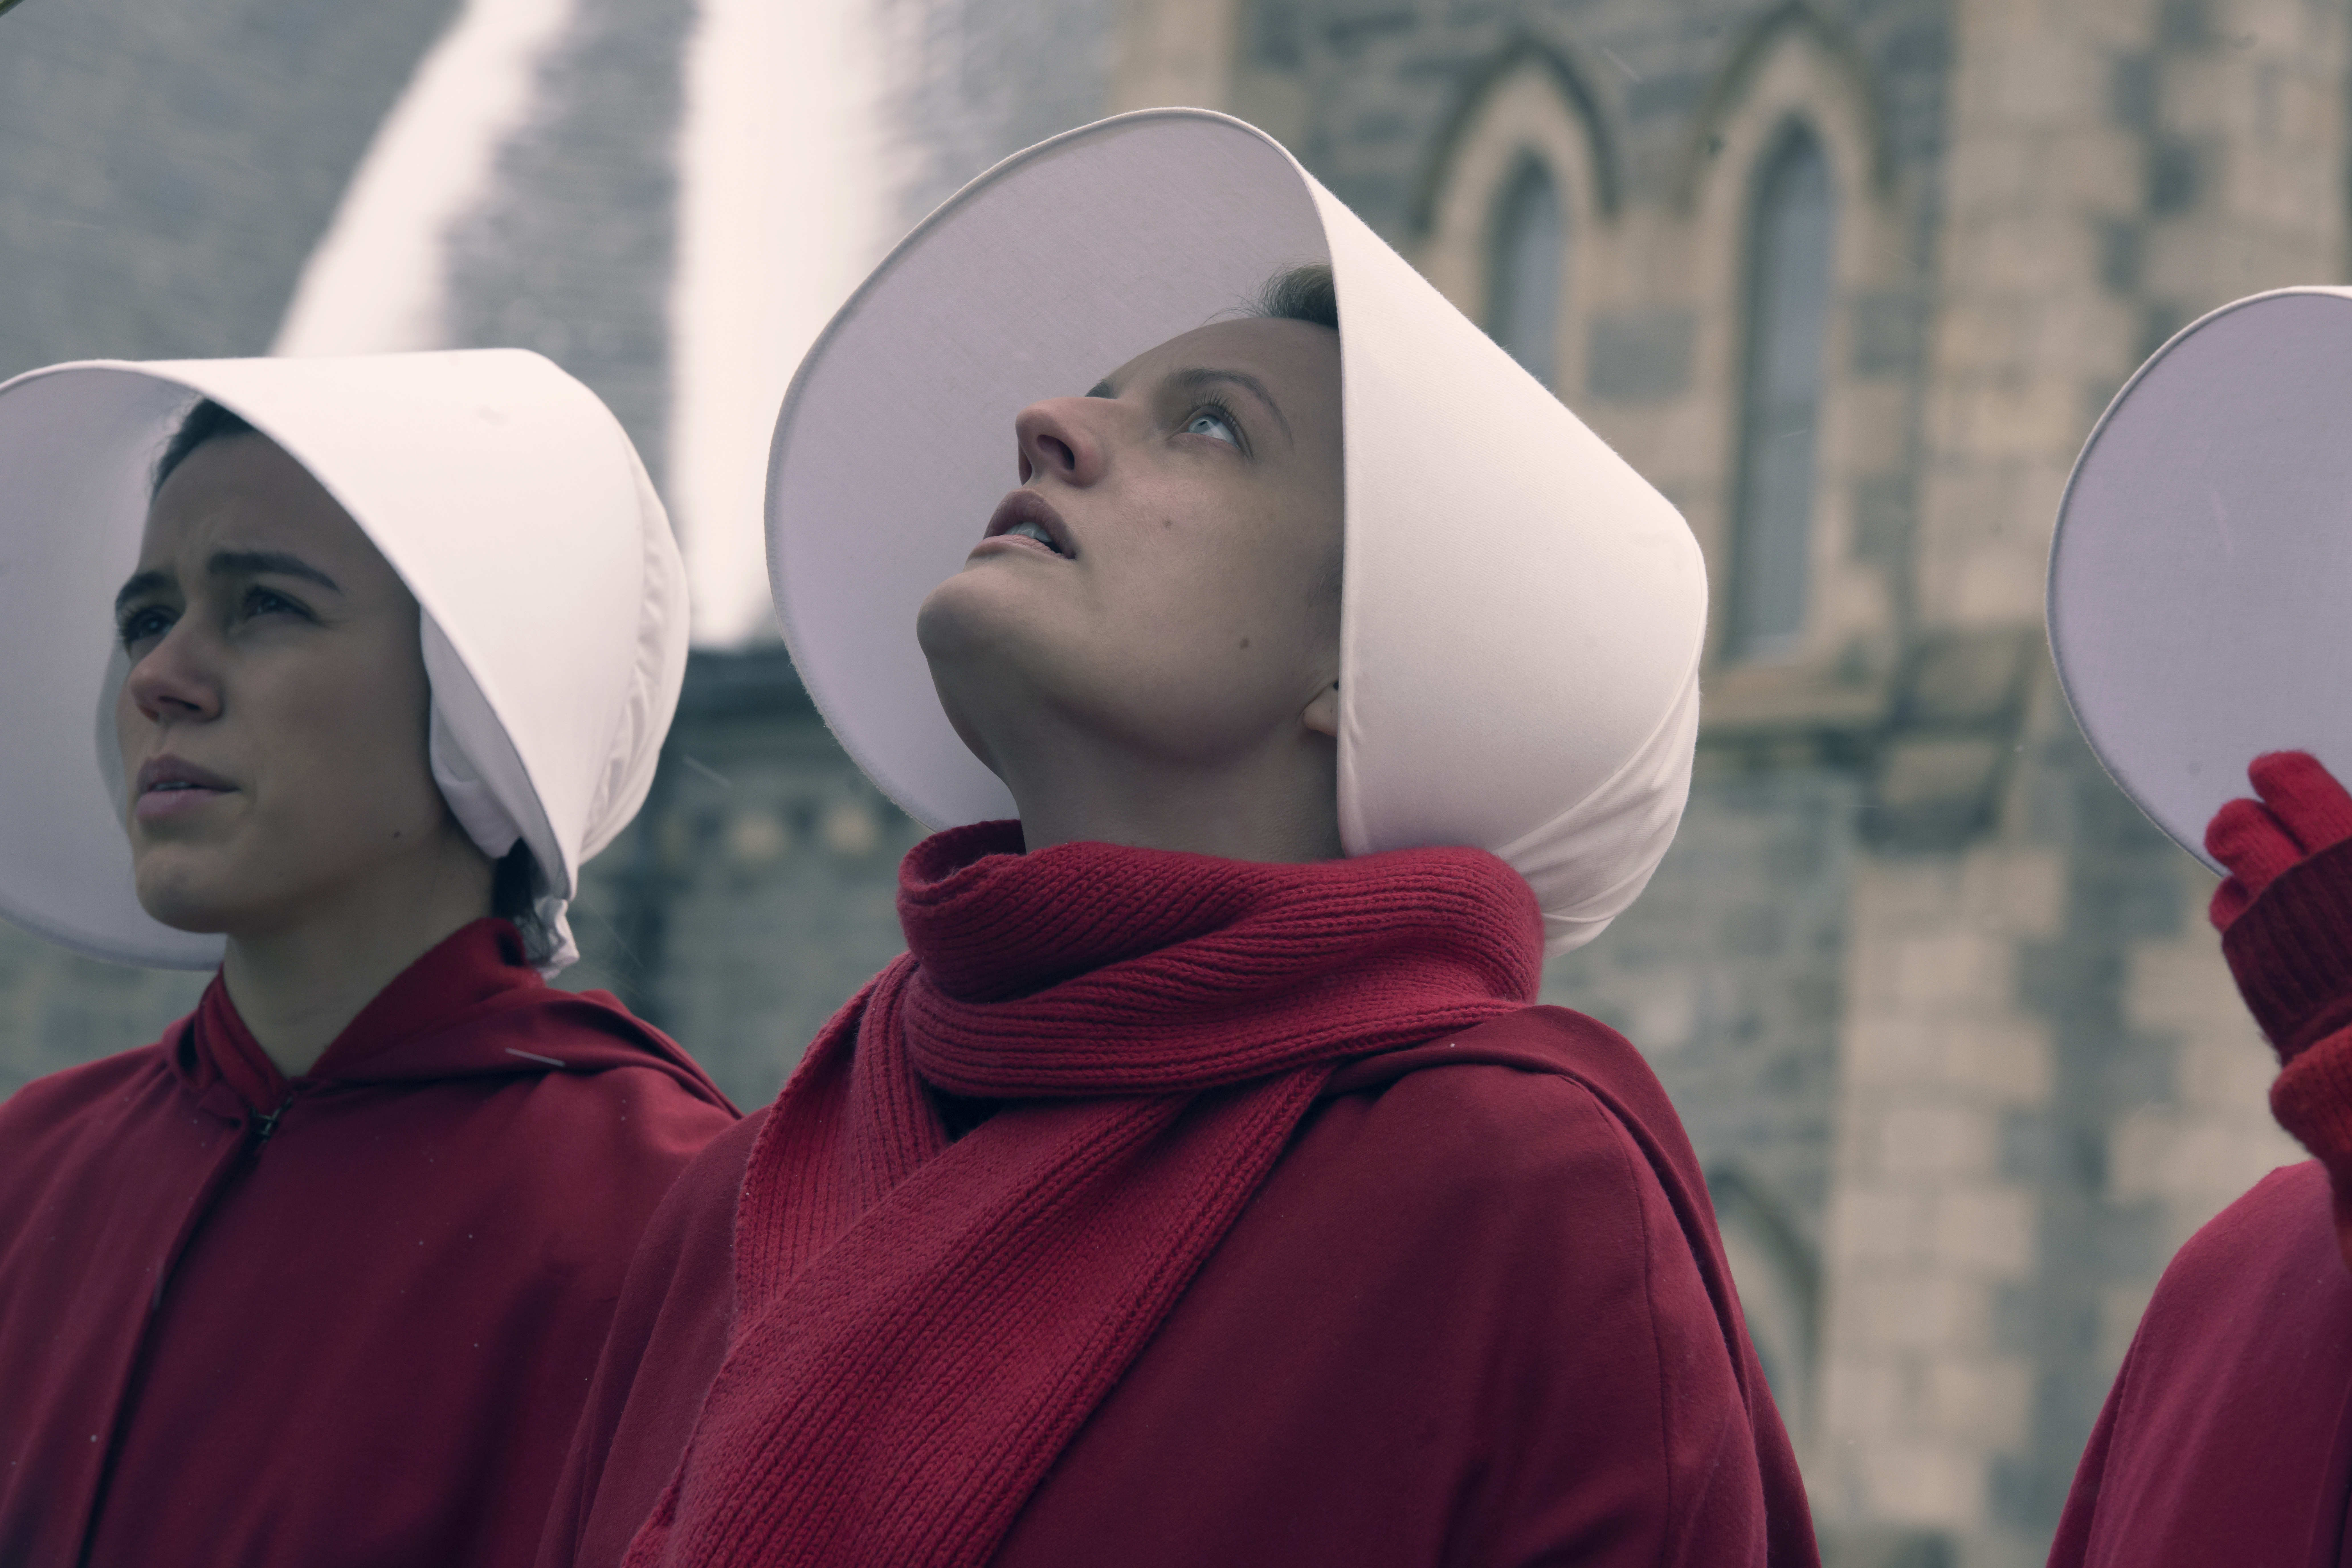 Some grim news about 'The Handmaid's Tale': It's getting